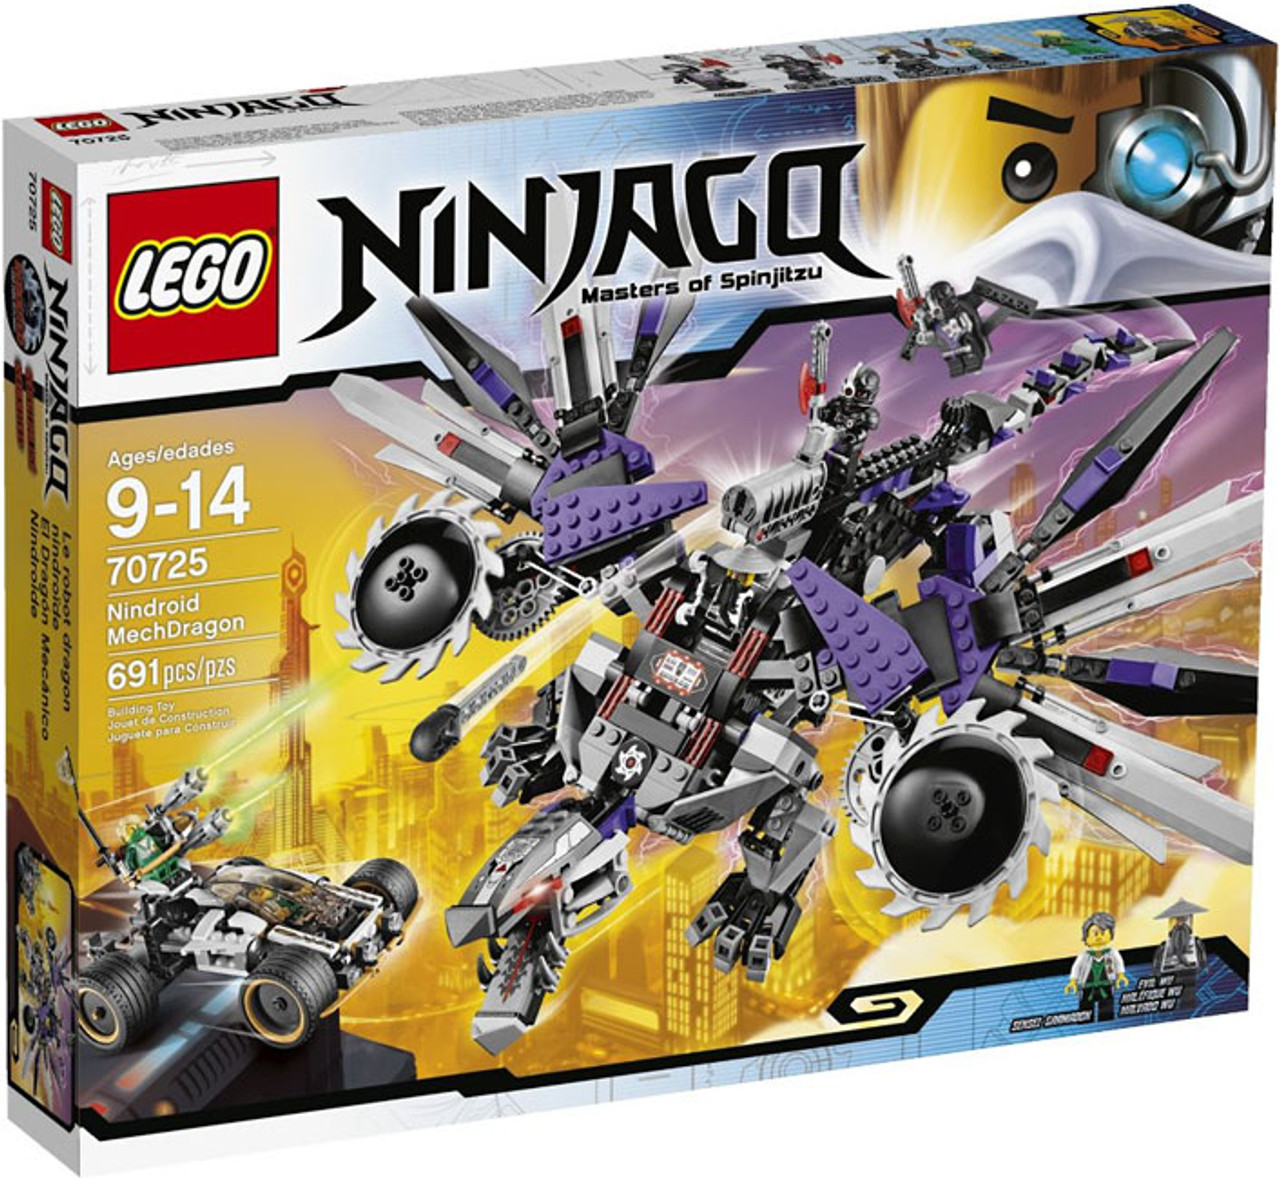 Fighting Lego Ninjago Free Coloring Pages - Free Printable ... | 1178x1280